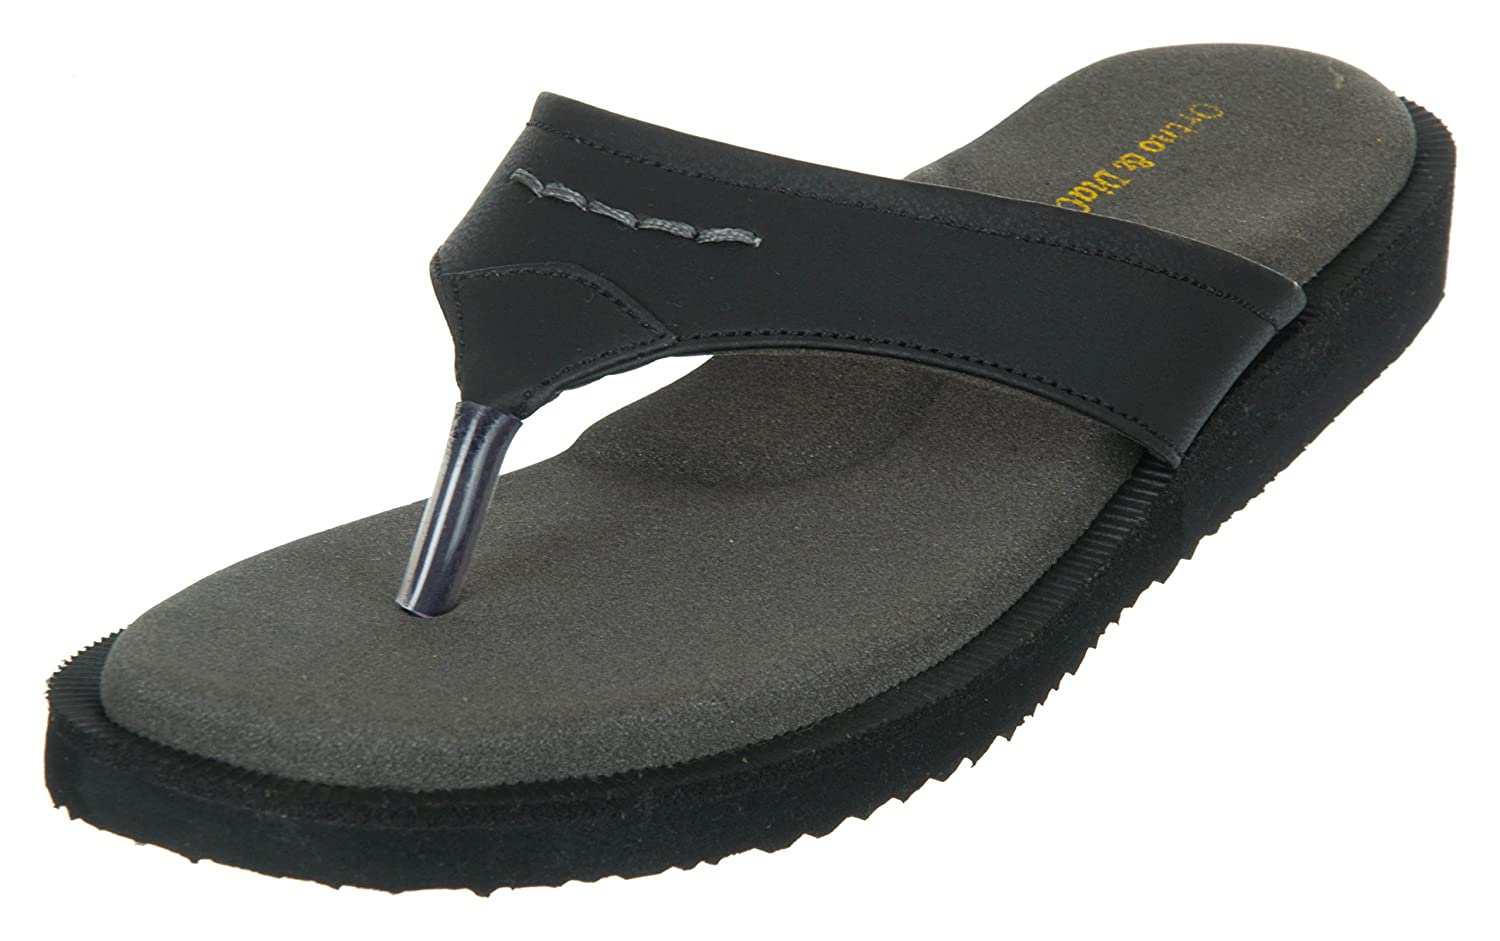 1058772f5574 Medifoot Women s Diabetic   Orthopedic Care Casual Black Slippers Footwear Chappal   Buy Online at Low Prices in India - Amazon.in